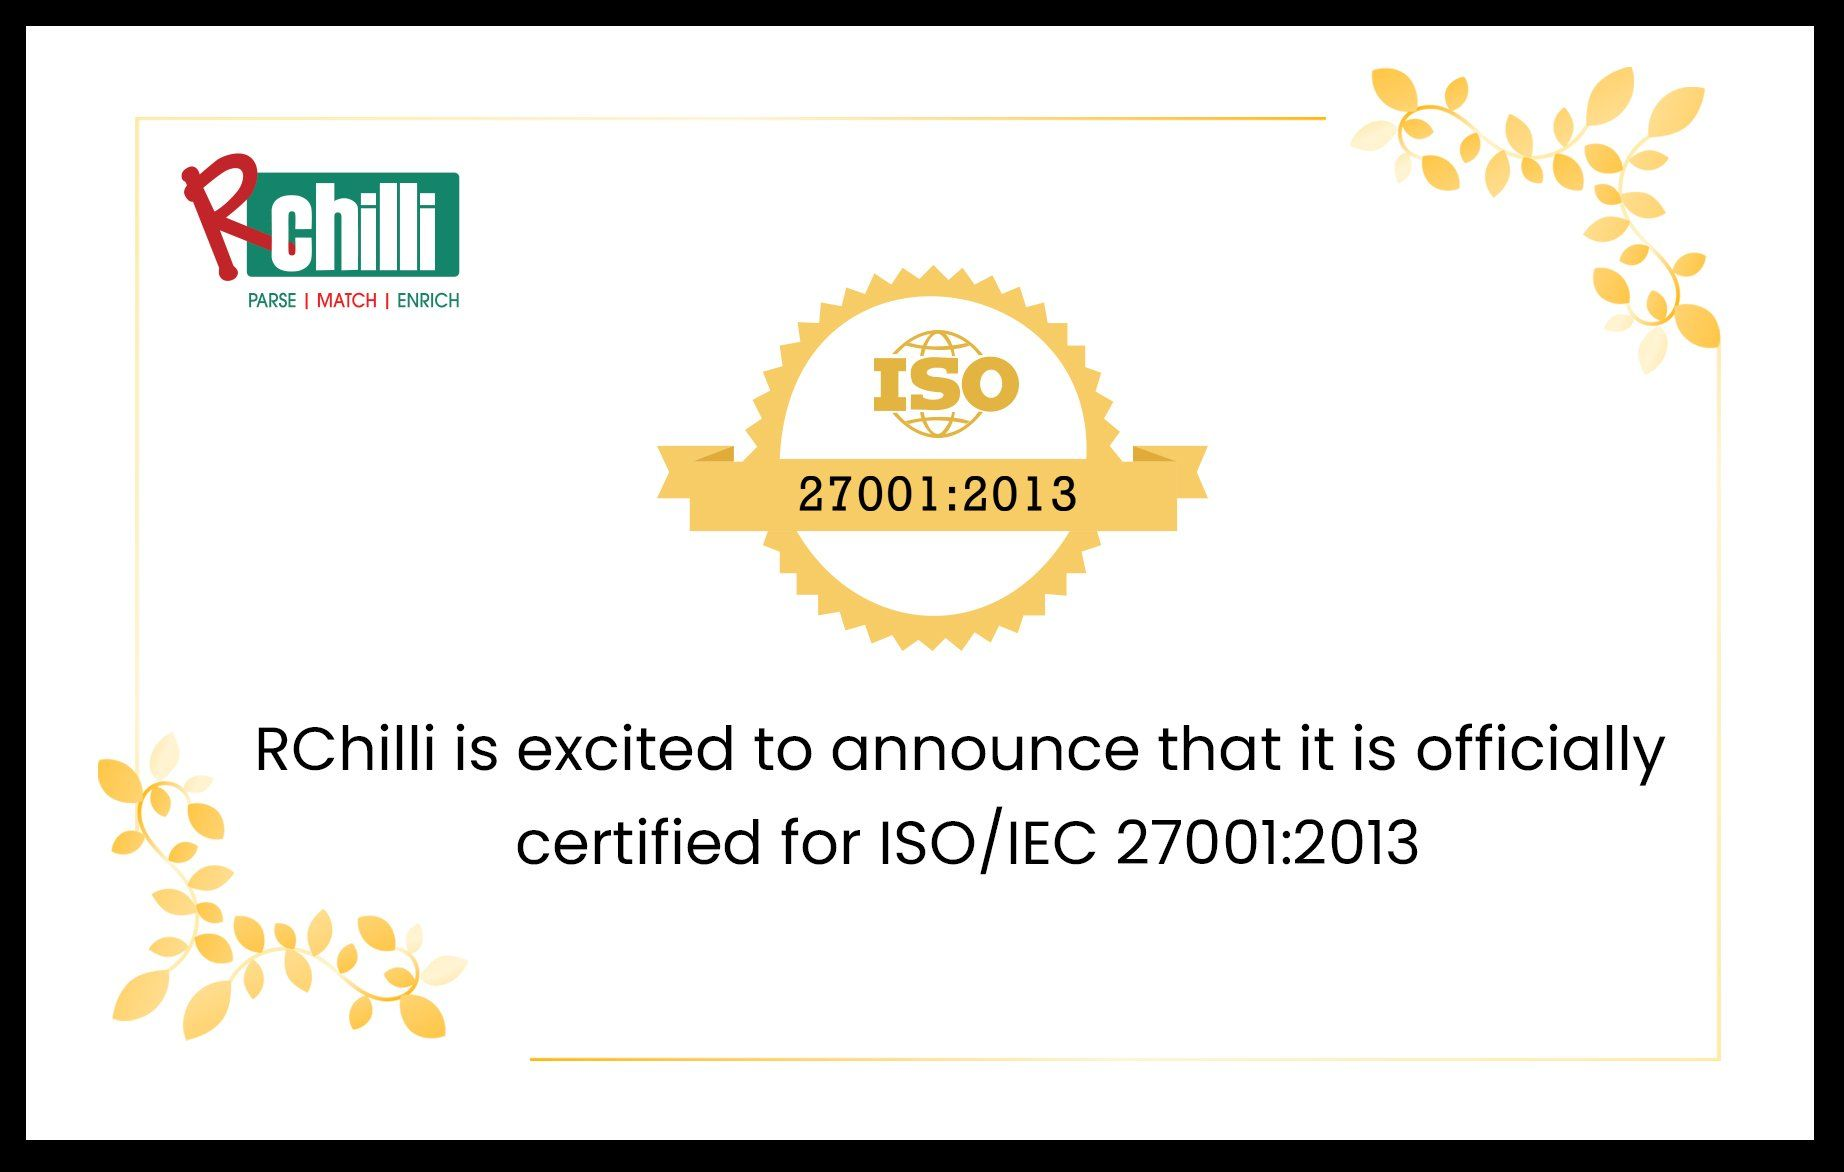 RChilli is Now ISO 27001:2013 Certified